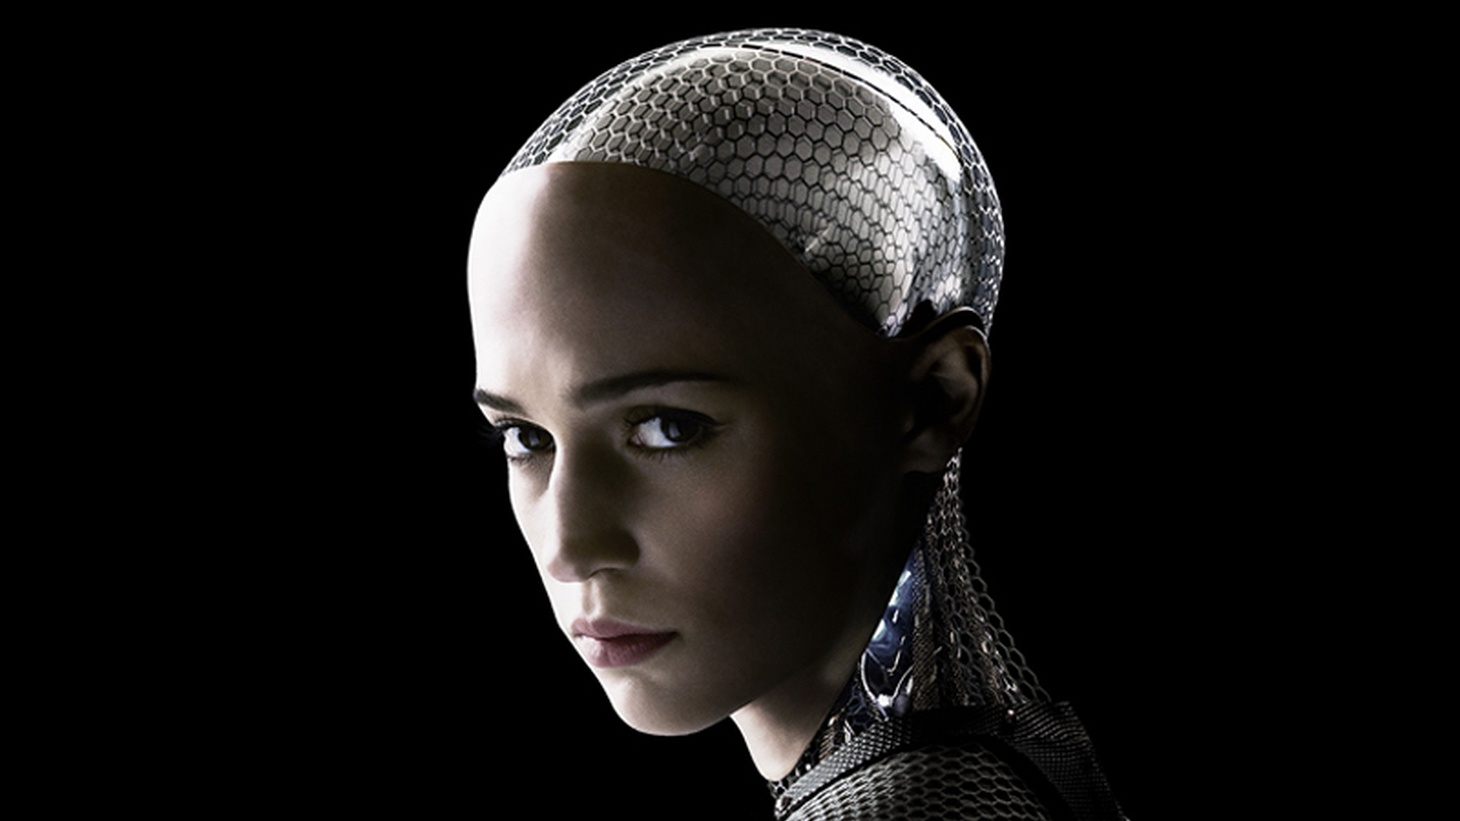 Alex Garland's Ex Machina is an elegant sci-fi fantasy about artificial intelligence.